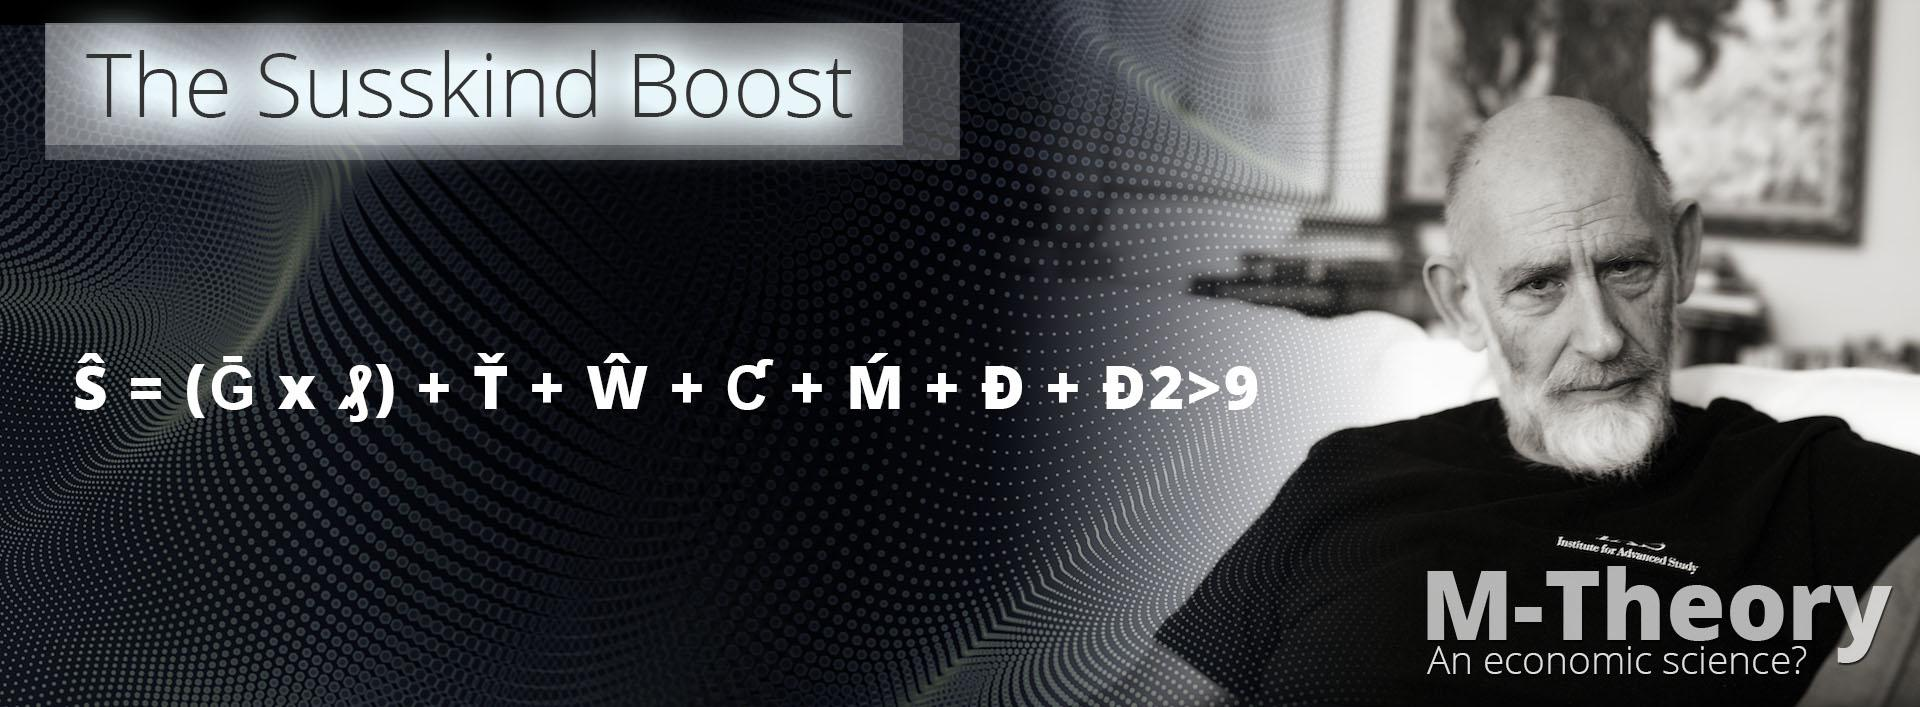 The Susskind Boost